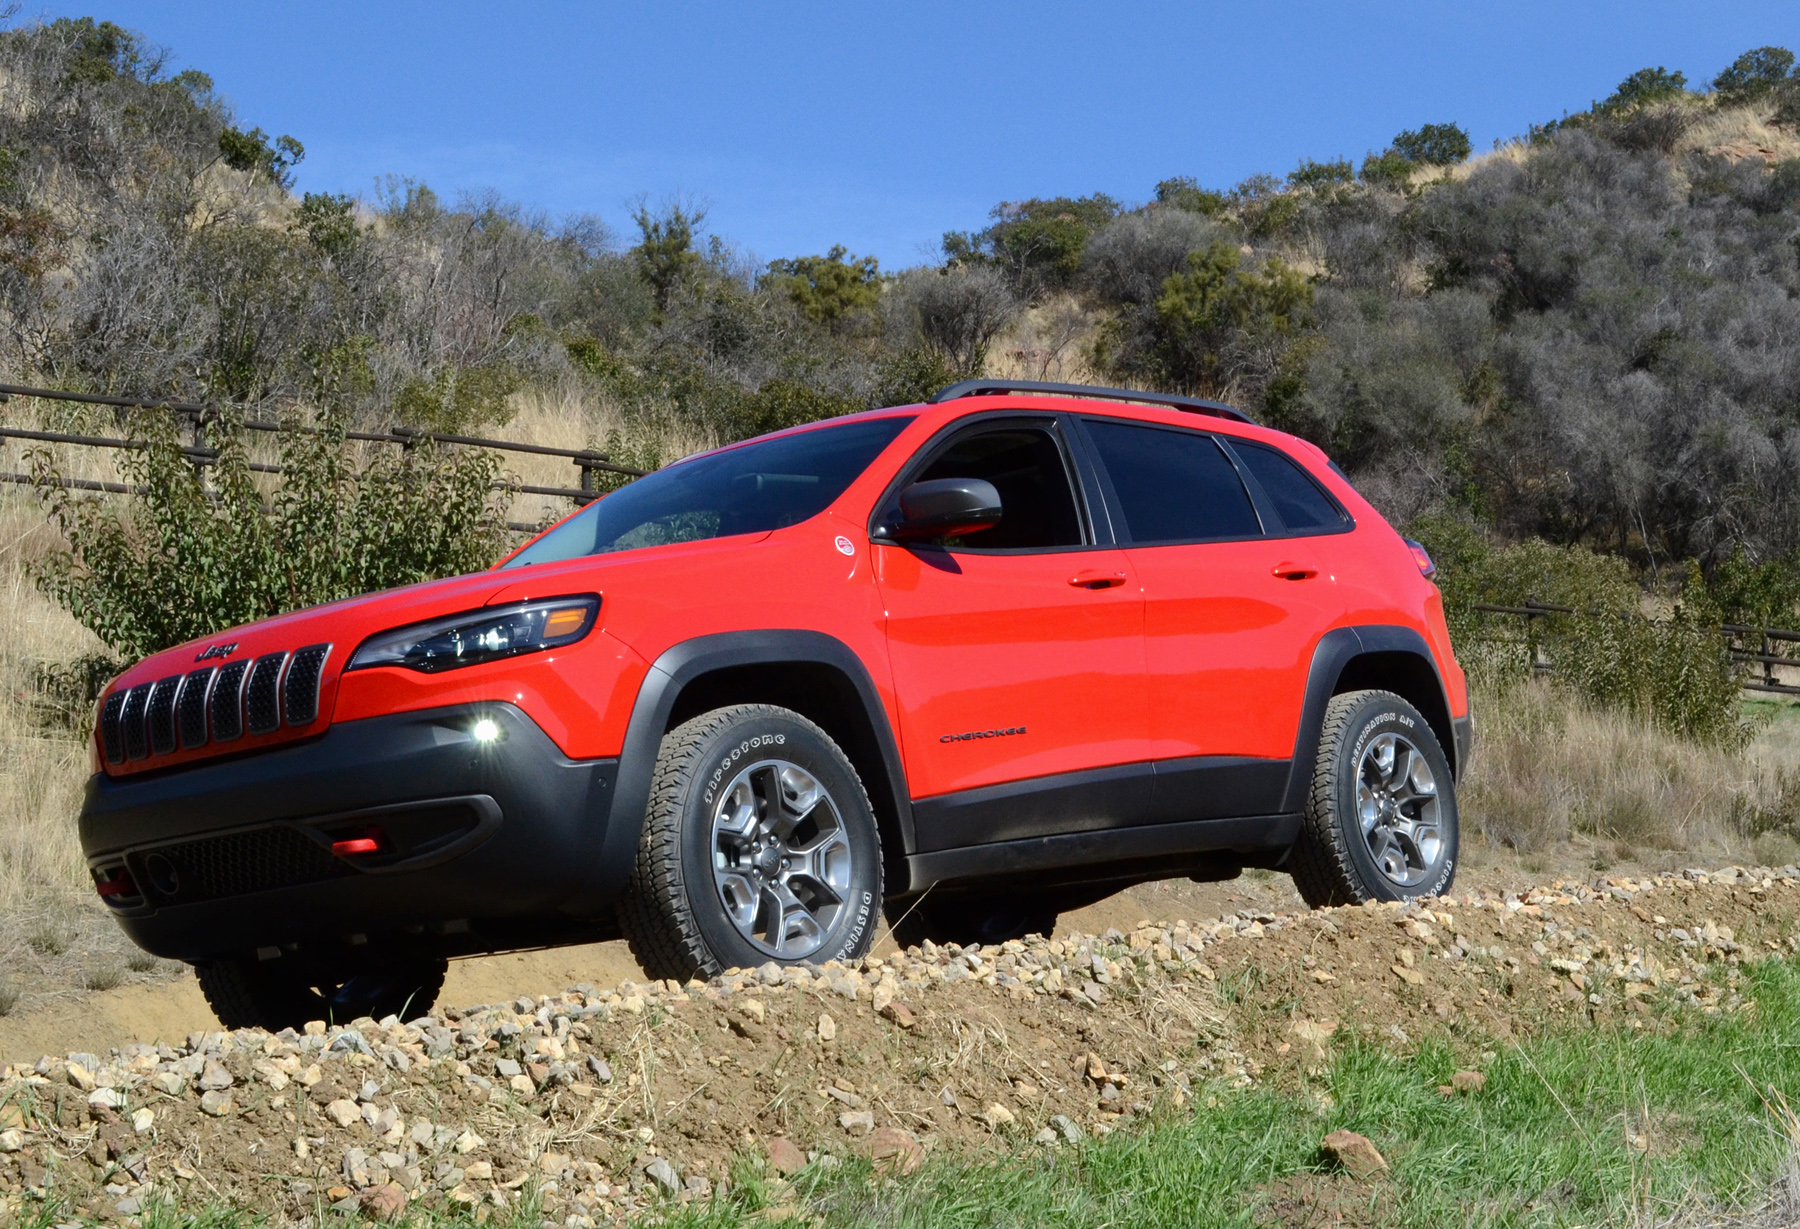 2019 Jeep Cherokee review